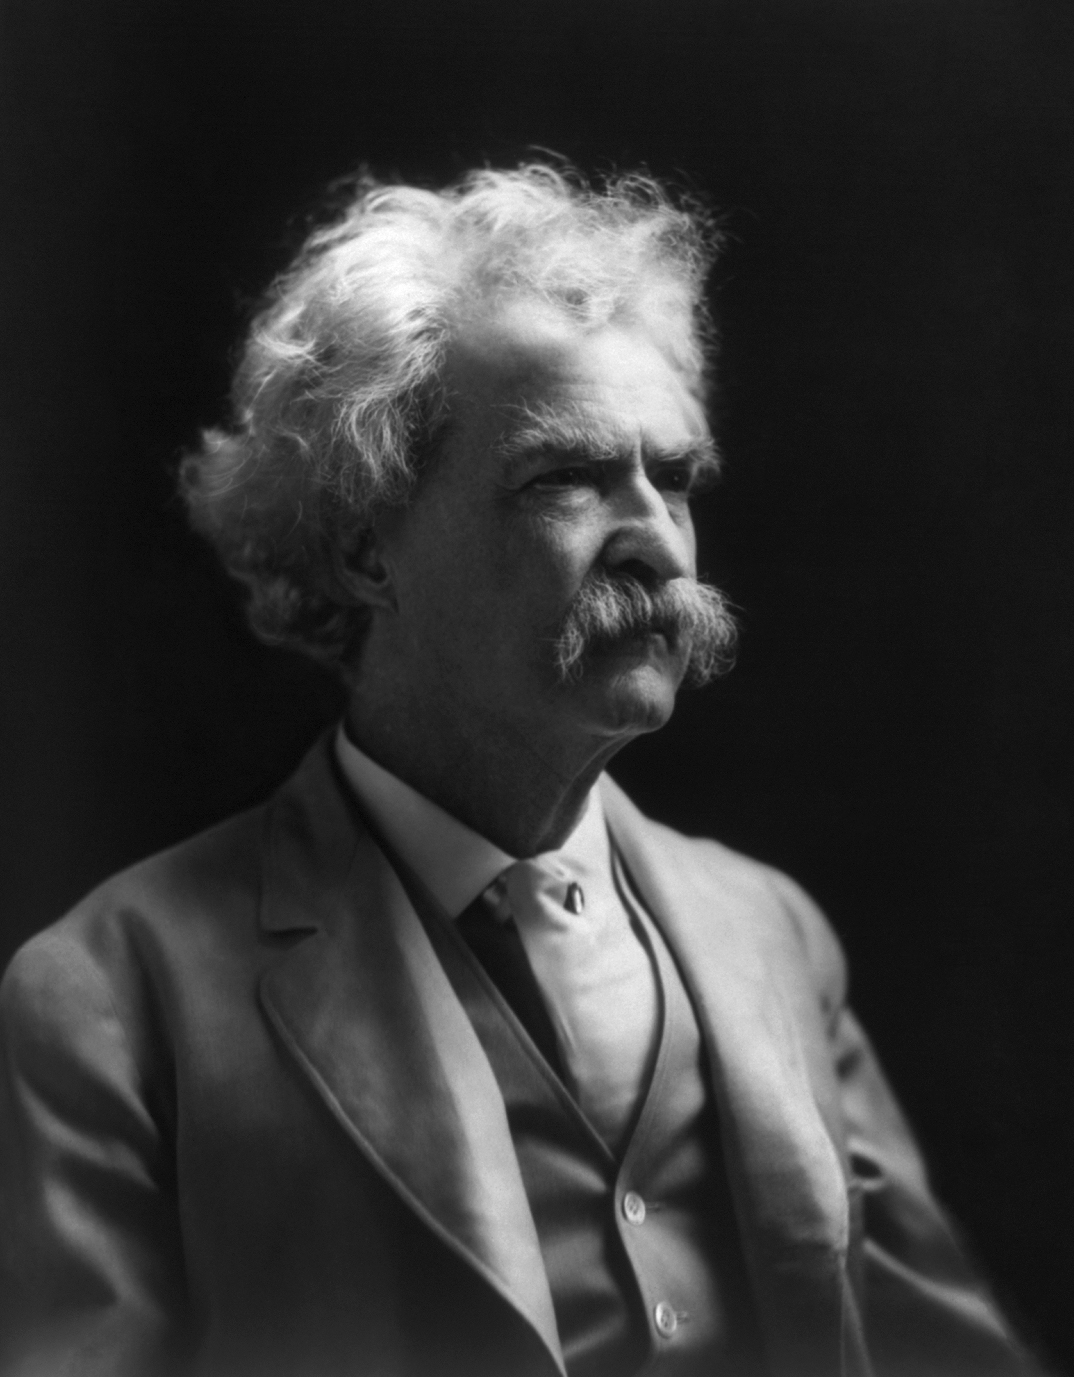 mark twain quotes - Anyone who stops learning is old